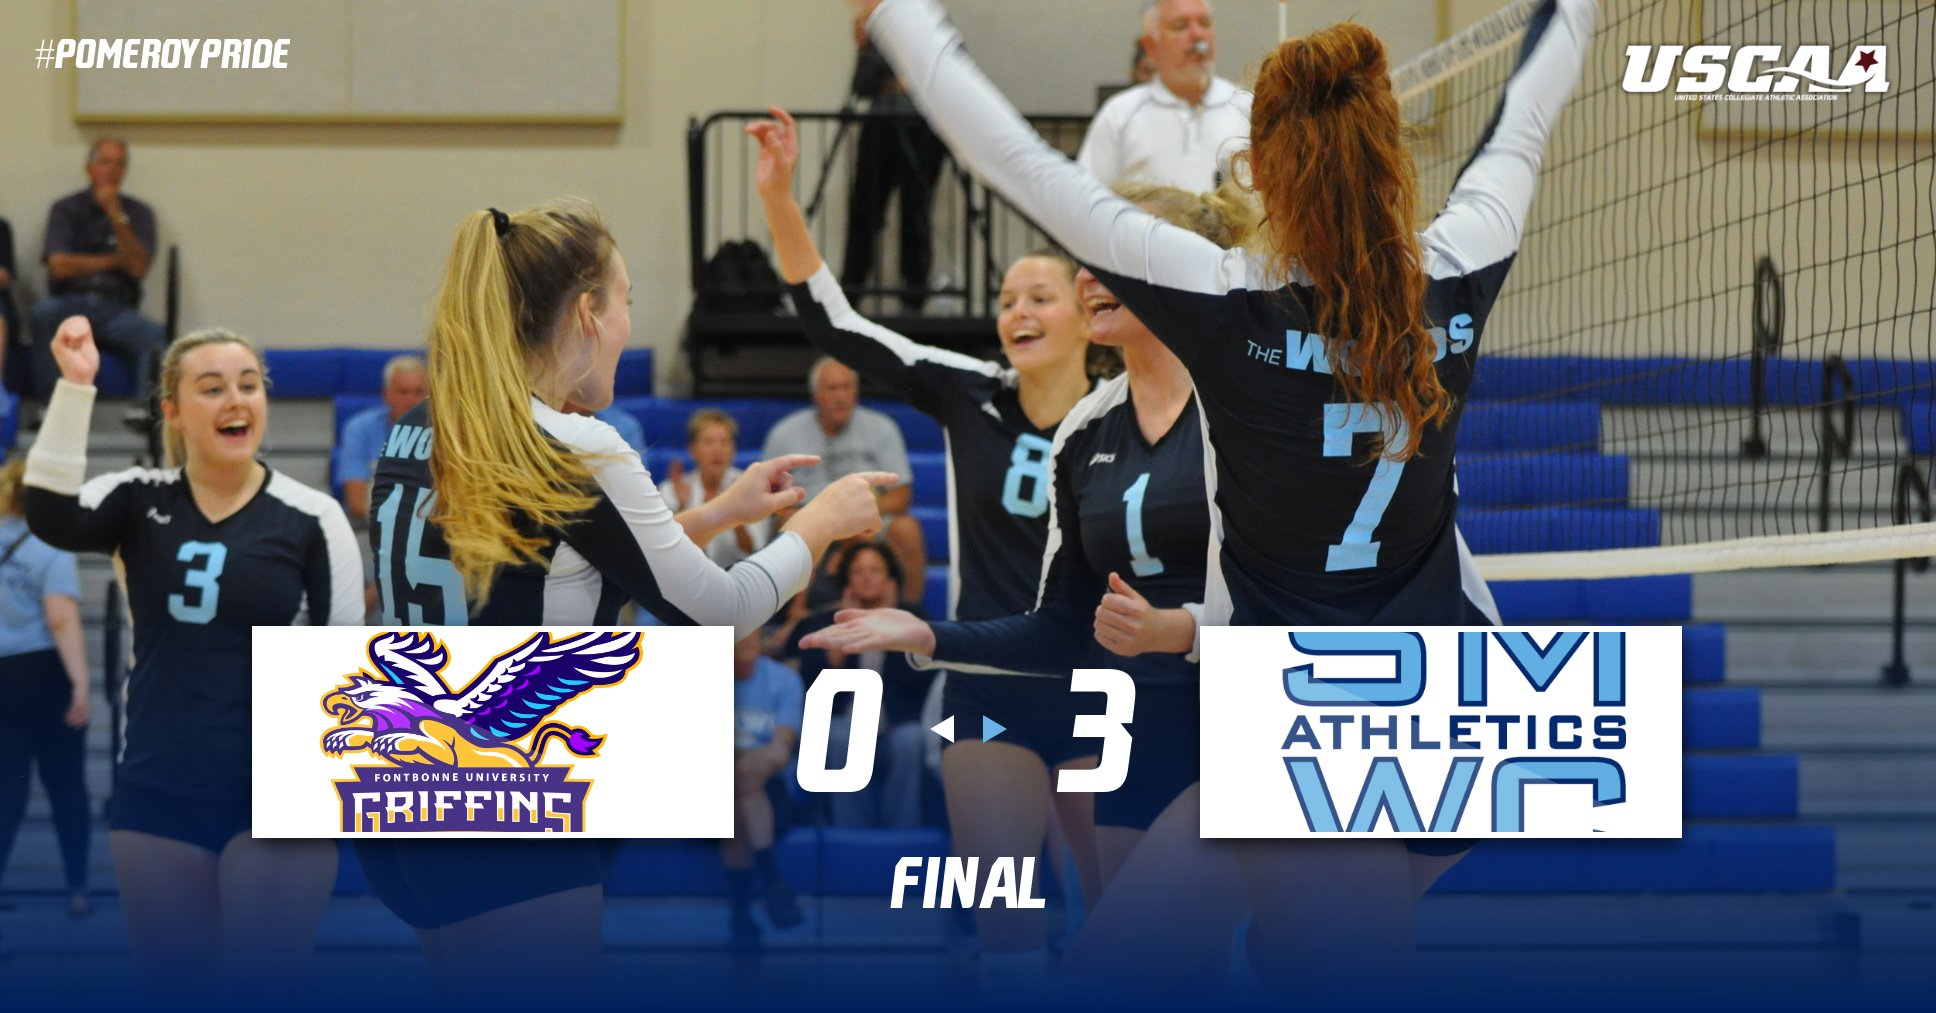 Kinney Get A Win? Alspach We Can; SMWC WoodBURNS Fontbonne 3-0